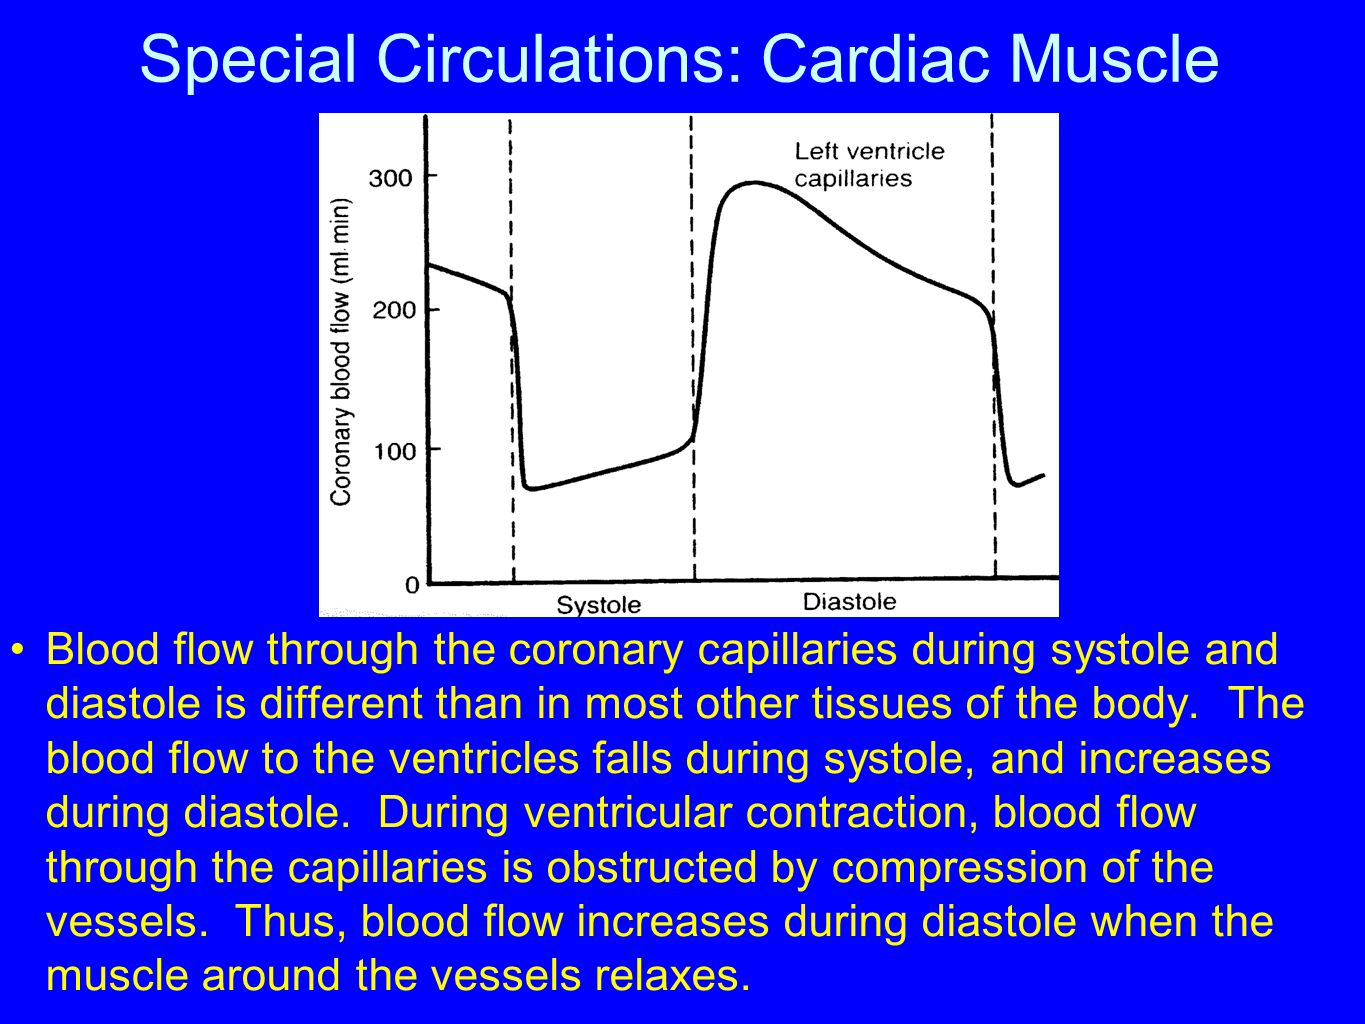 Special Circulations: Cardiac Muscle